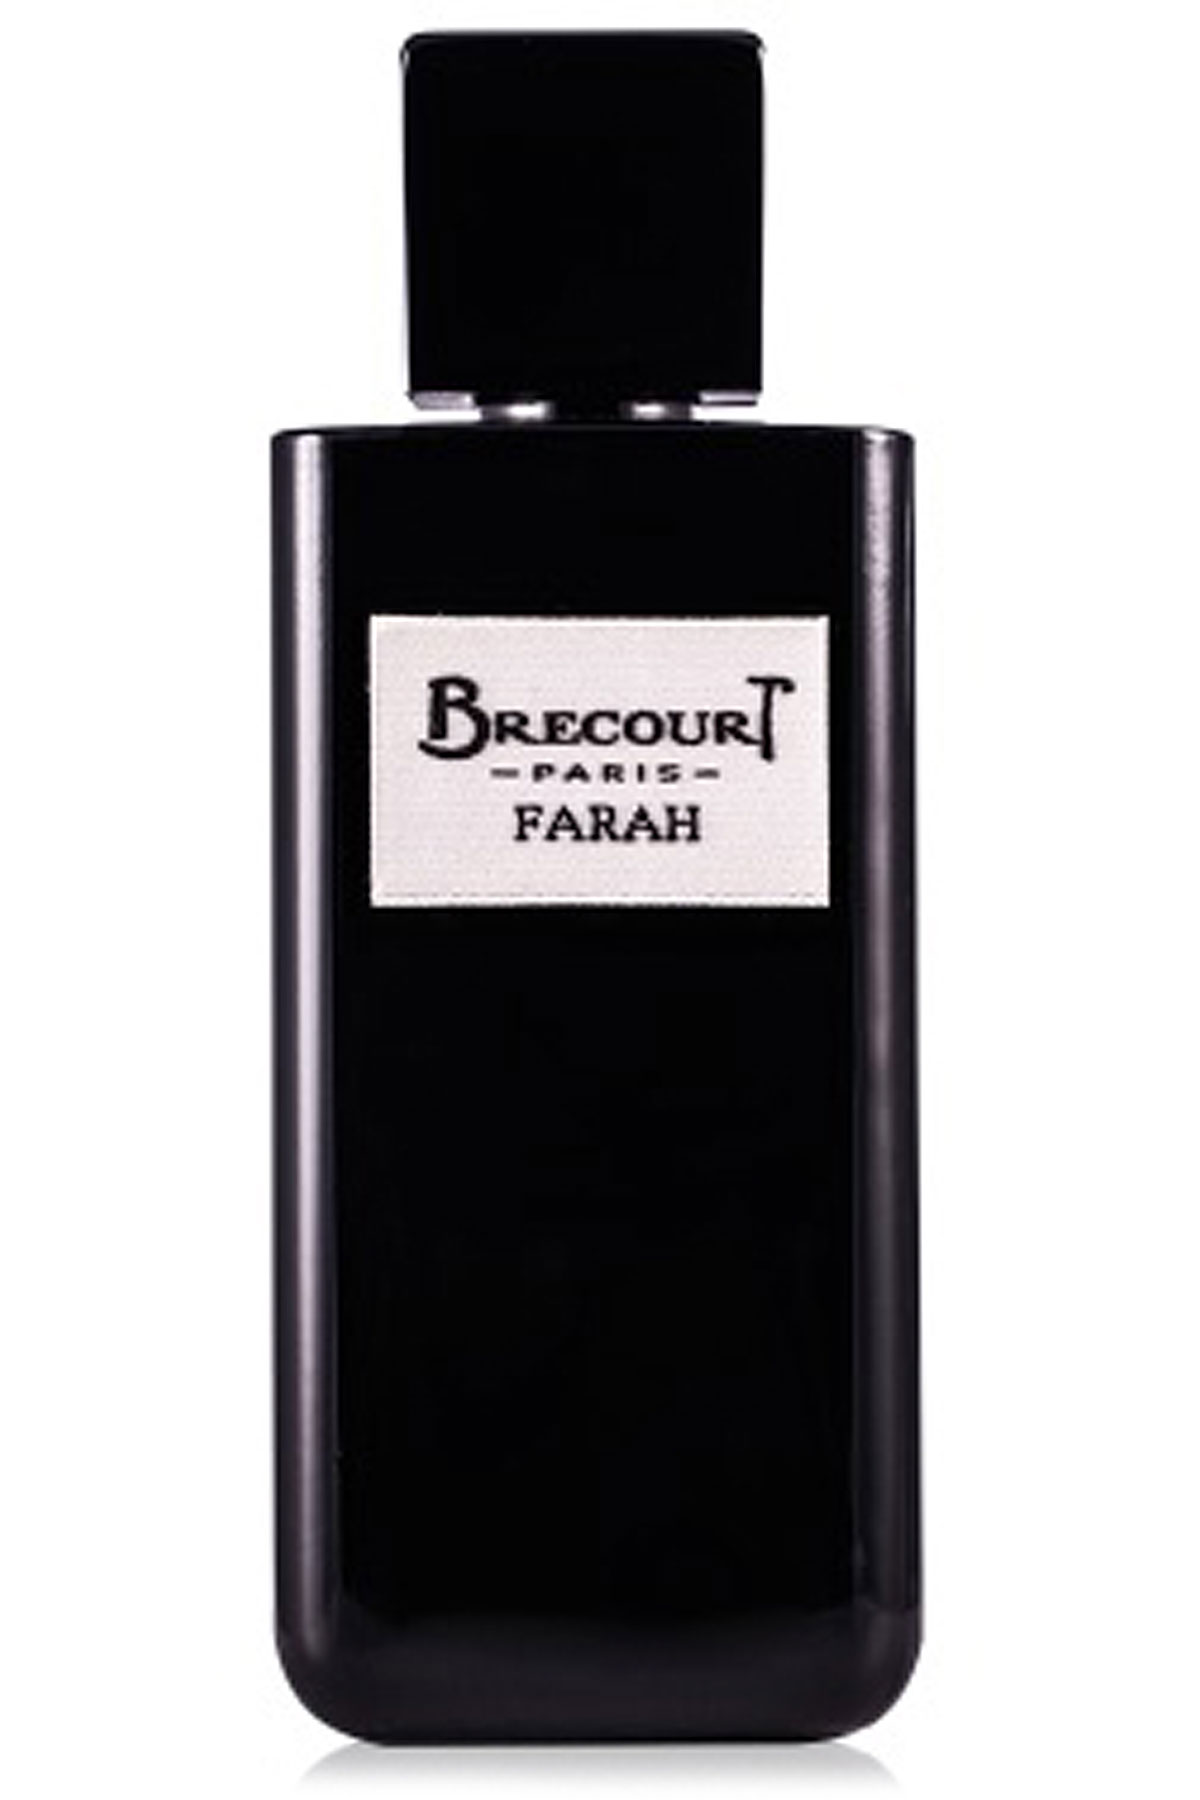 Brecourt Fragrances for Women, Farah - Eau De Parfum - 100 Ml, 2019, 100 ml